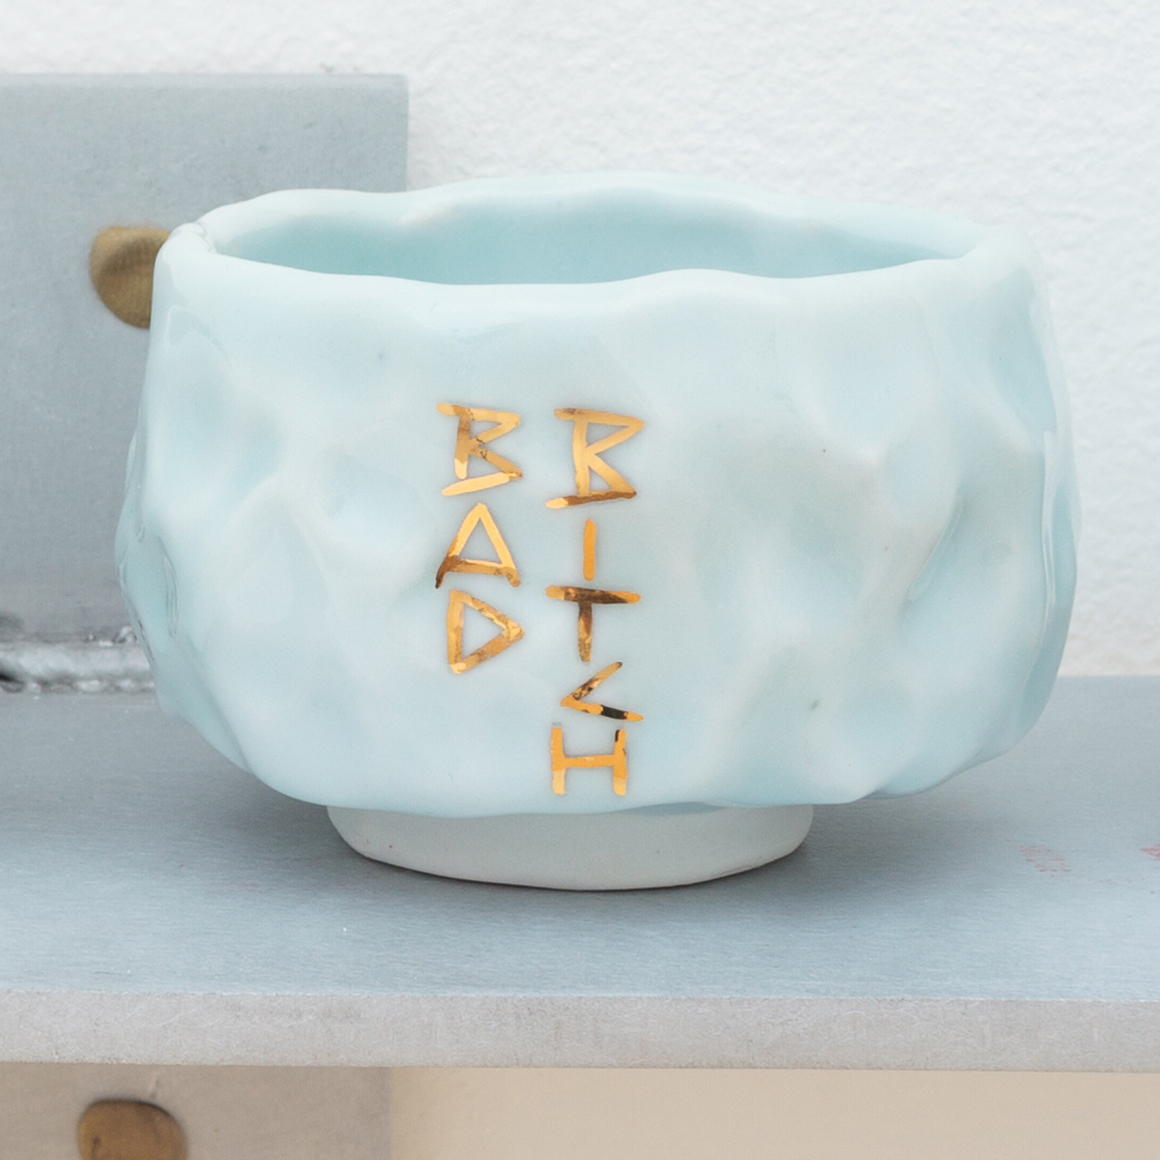 <p><em>Bad Bitch Cup (2)</em><span class='media'>Glazed porcelain, gold luster, aluminum, Sculpey clay</span>2 x 2.7625 x 2.7625 in (5.1 x 7 x 7 cm)<br>2016<br><a class='inquire' href='mailto:info@gildargallery.com?subject=Artwork Inquiry PWAS0003&body=I am interested in finding out more about Bad Bitch Cup (2) by Patrice Renee Washington'>Inquire</a></p>